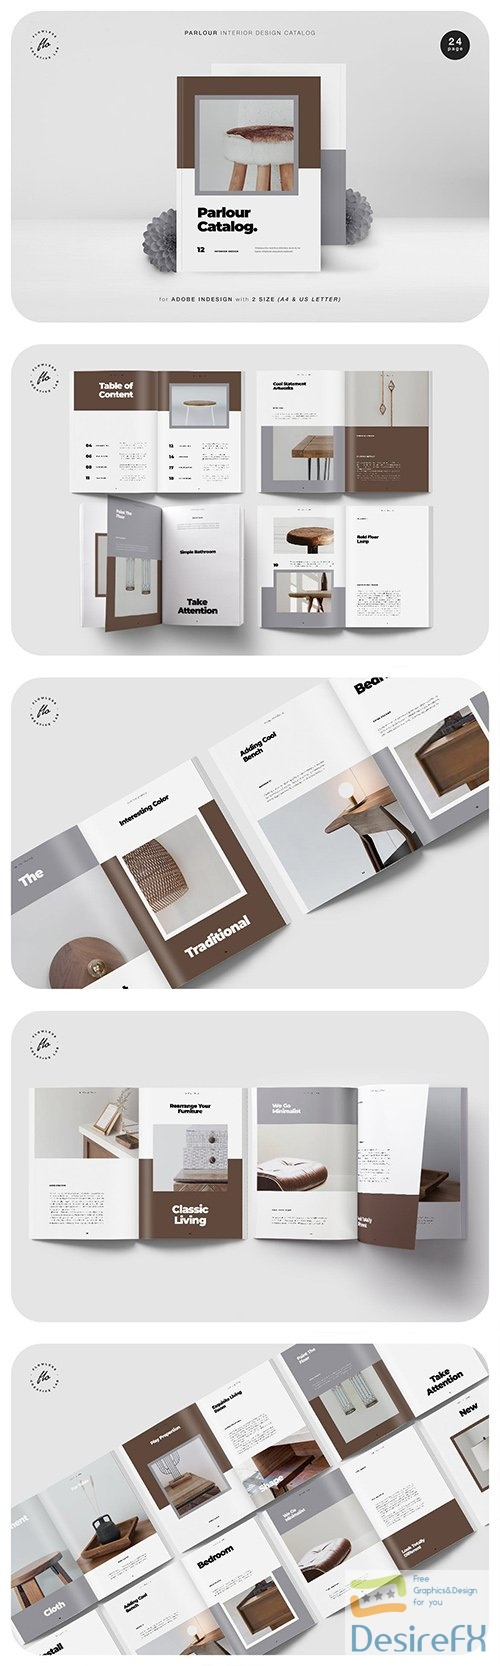 Parlour Interor Design Catalog